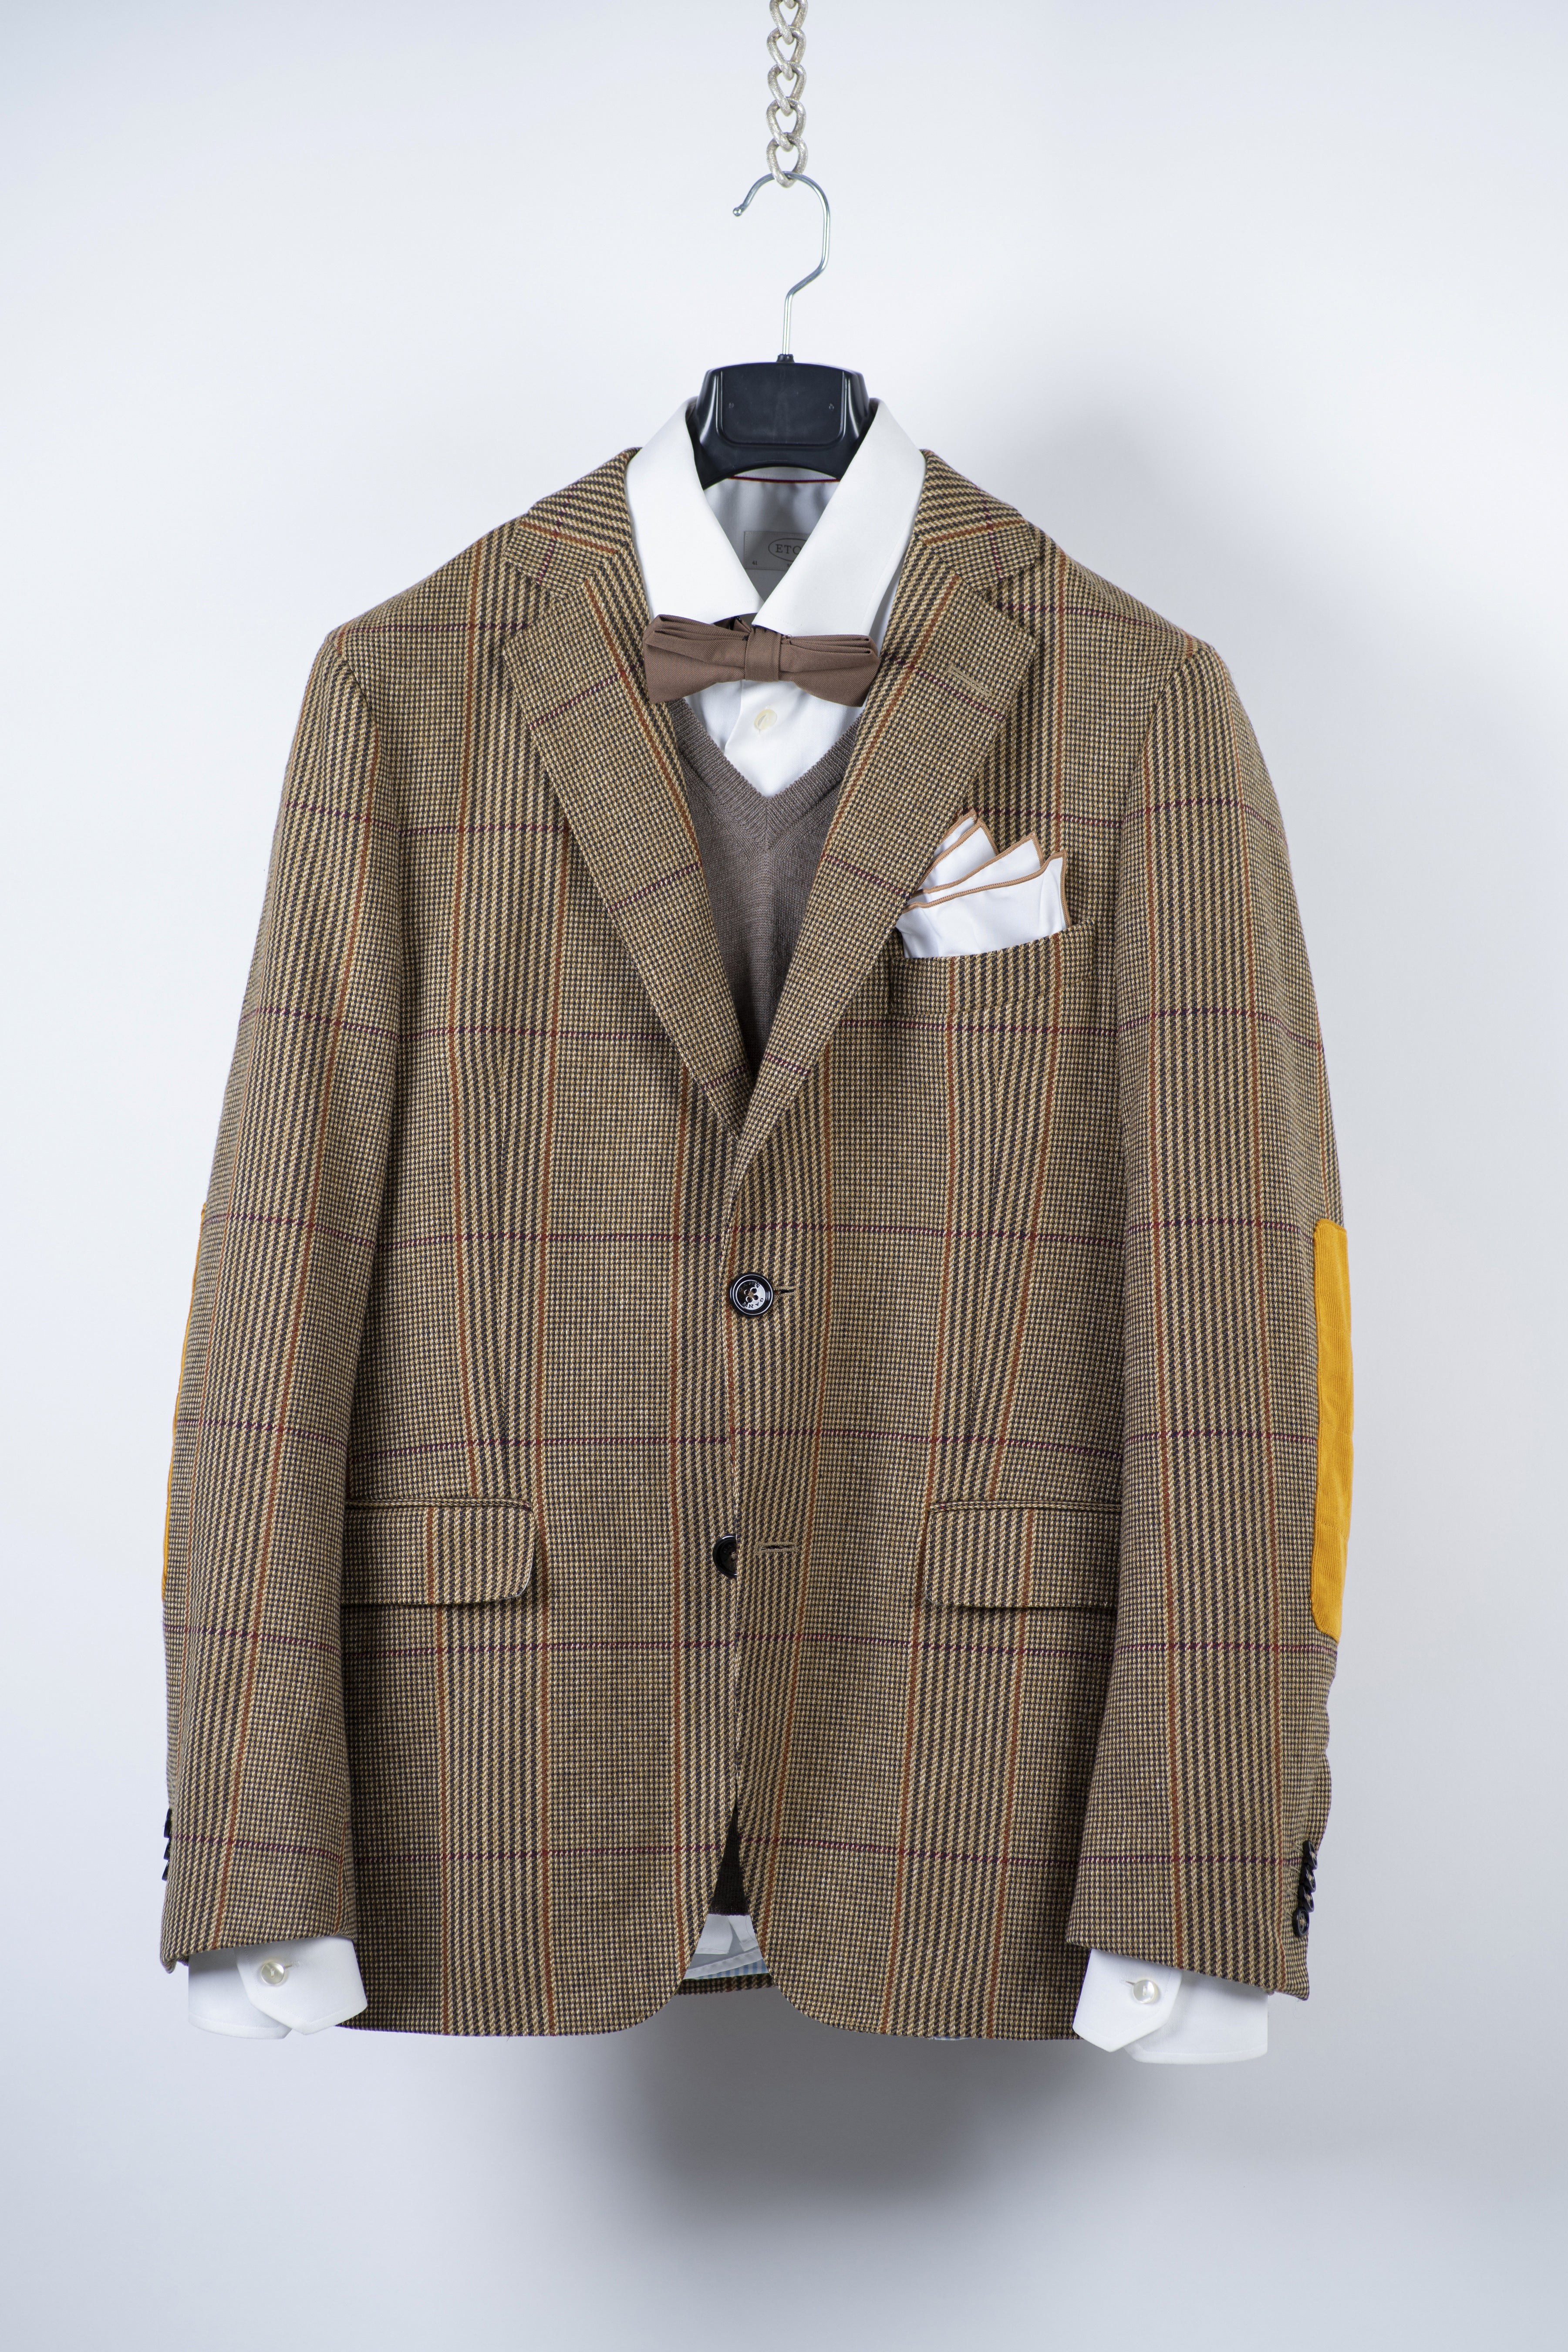 Gant Michael Bastian Brown Wool Blazer, US 38R, EU 48